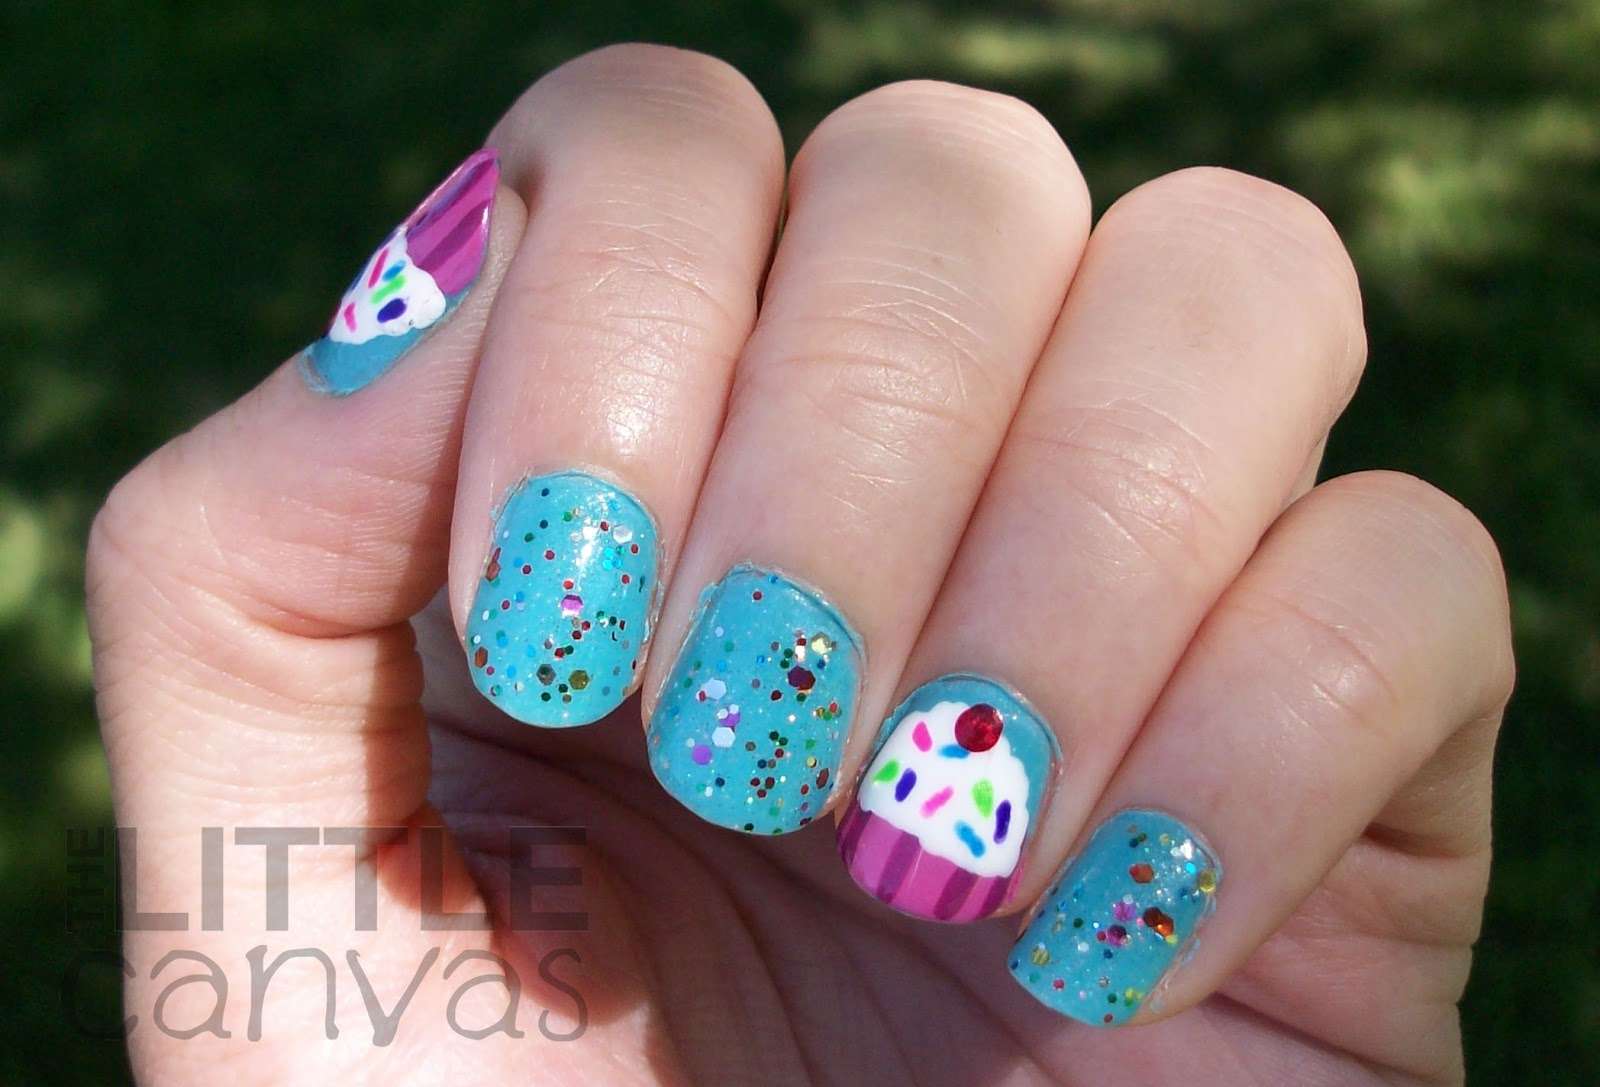 Birthday Cupcake Nail Art! - The Little Canvas